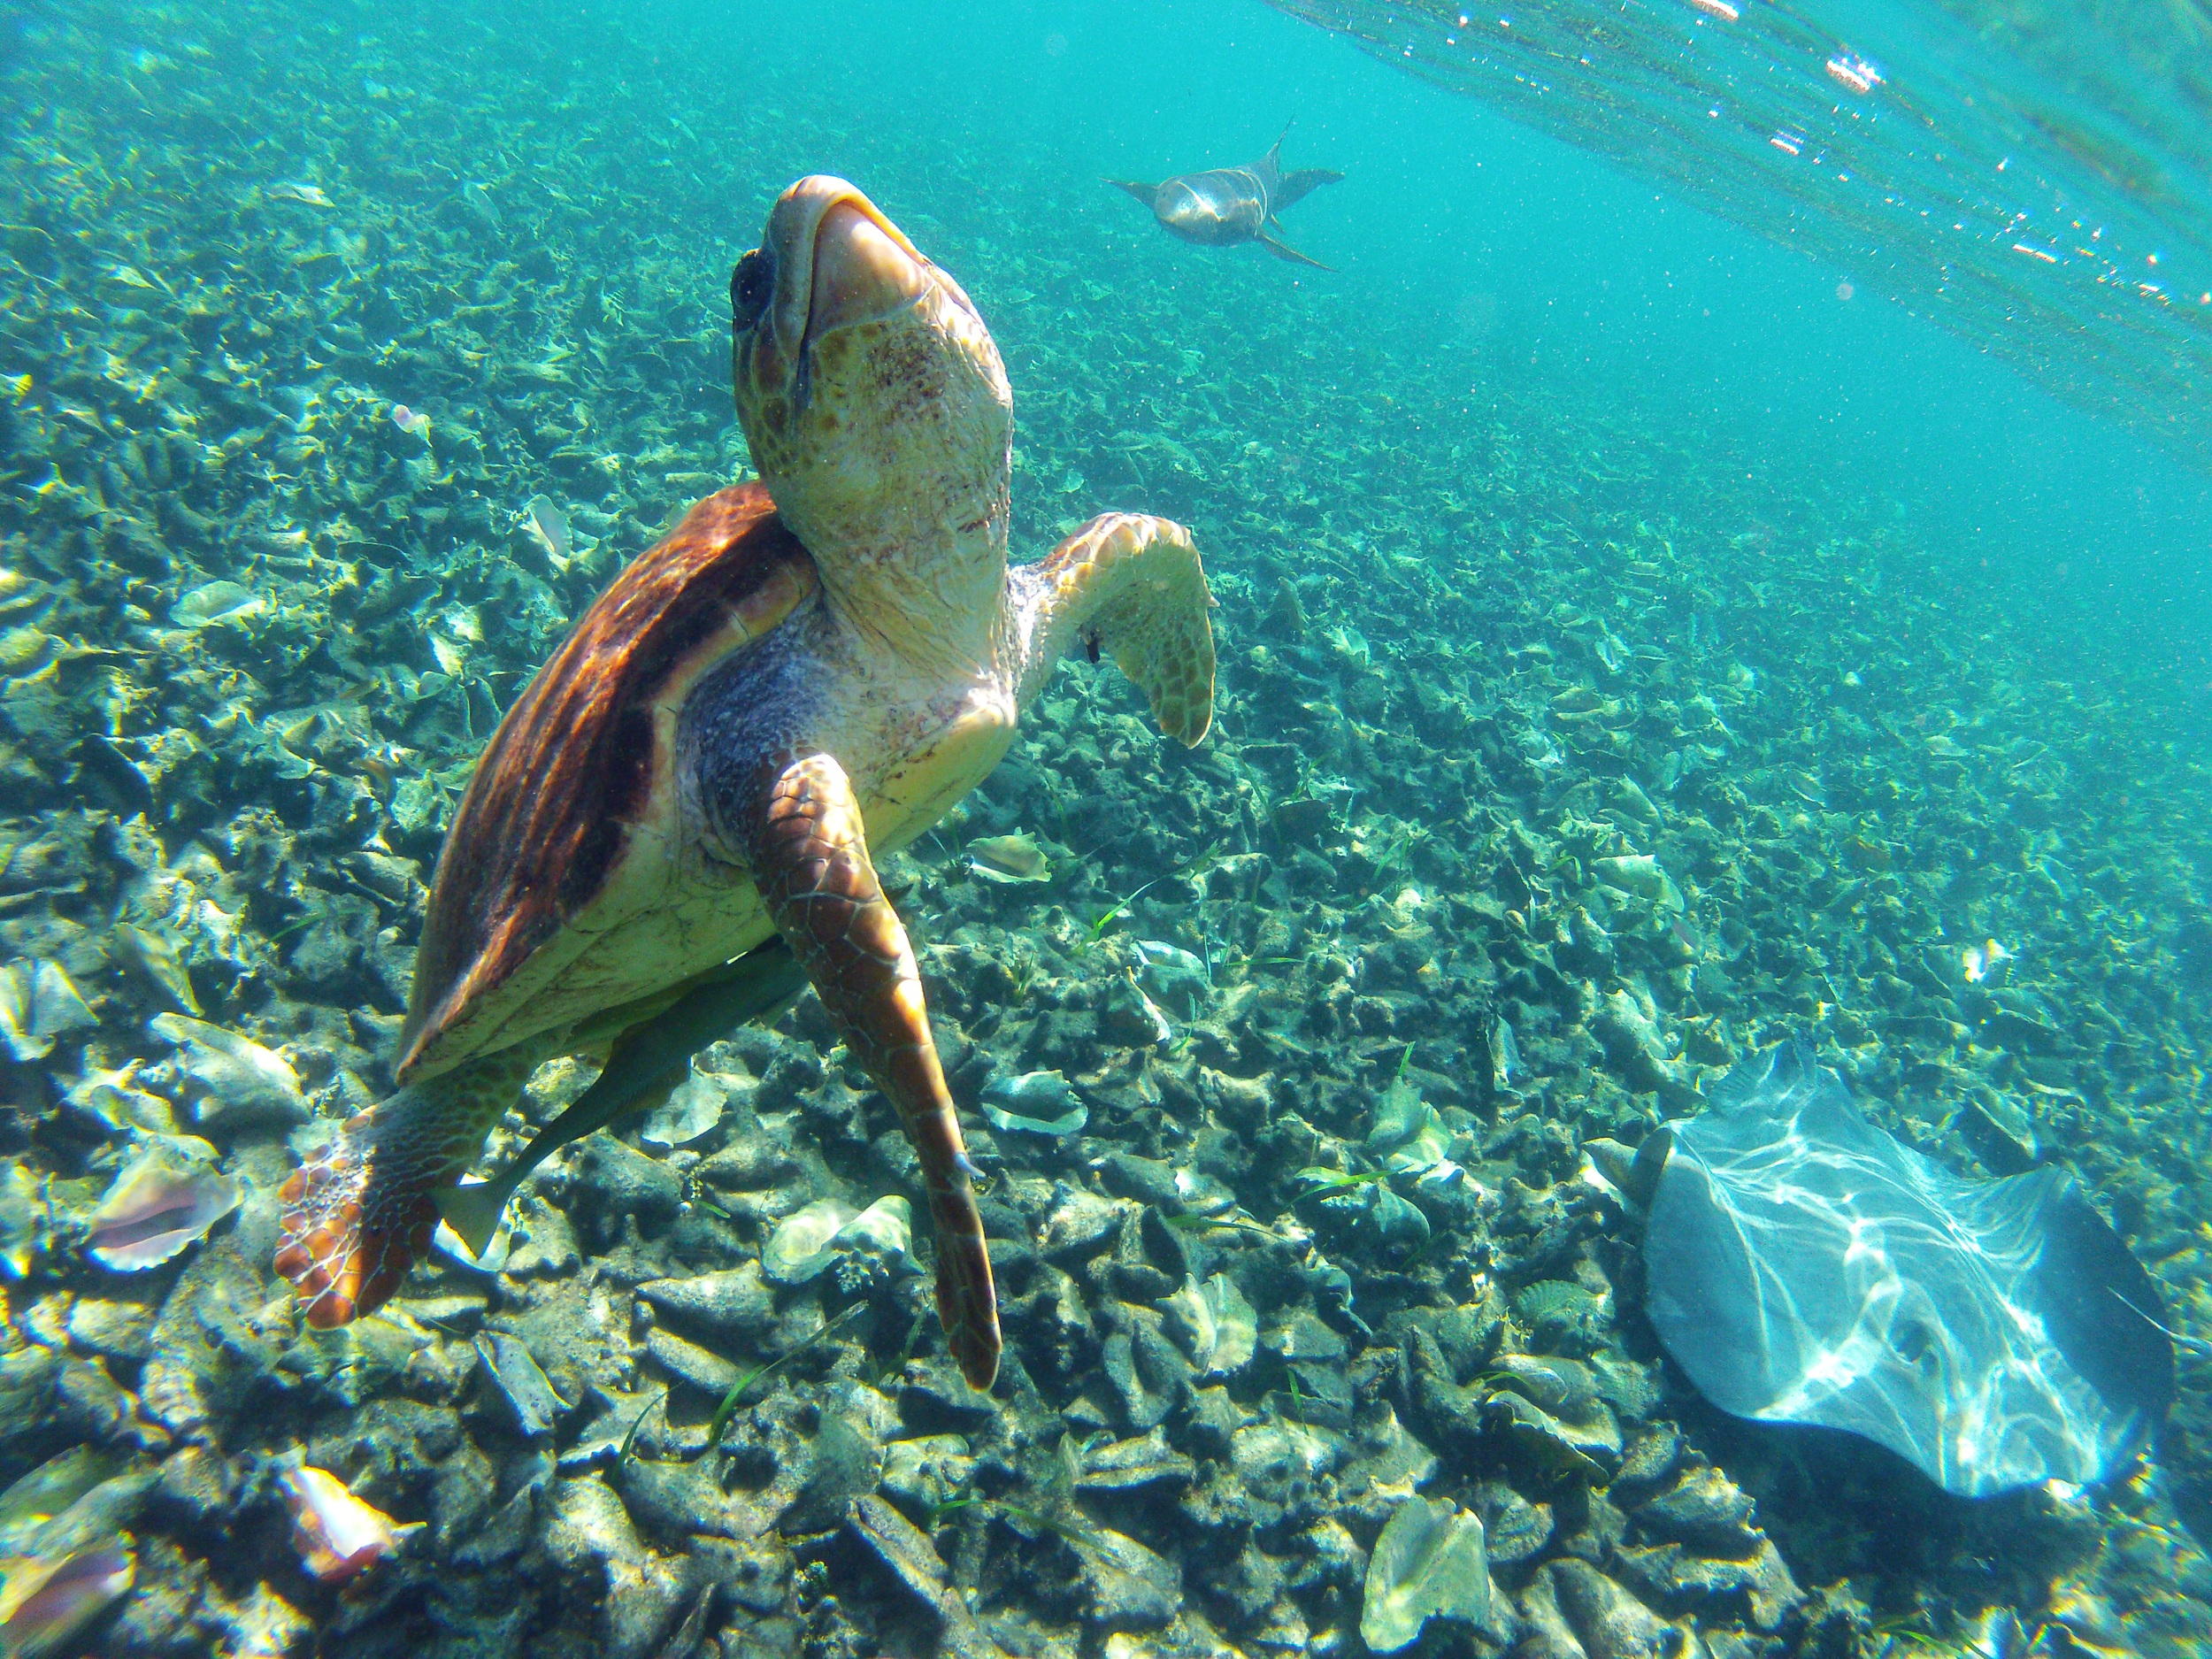 Snorkelling and diving at the Hol Chan Marine Reserve provides for close encounters with the local marine life